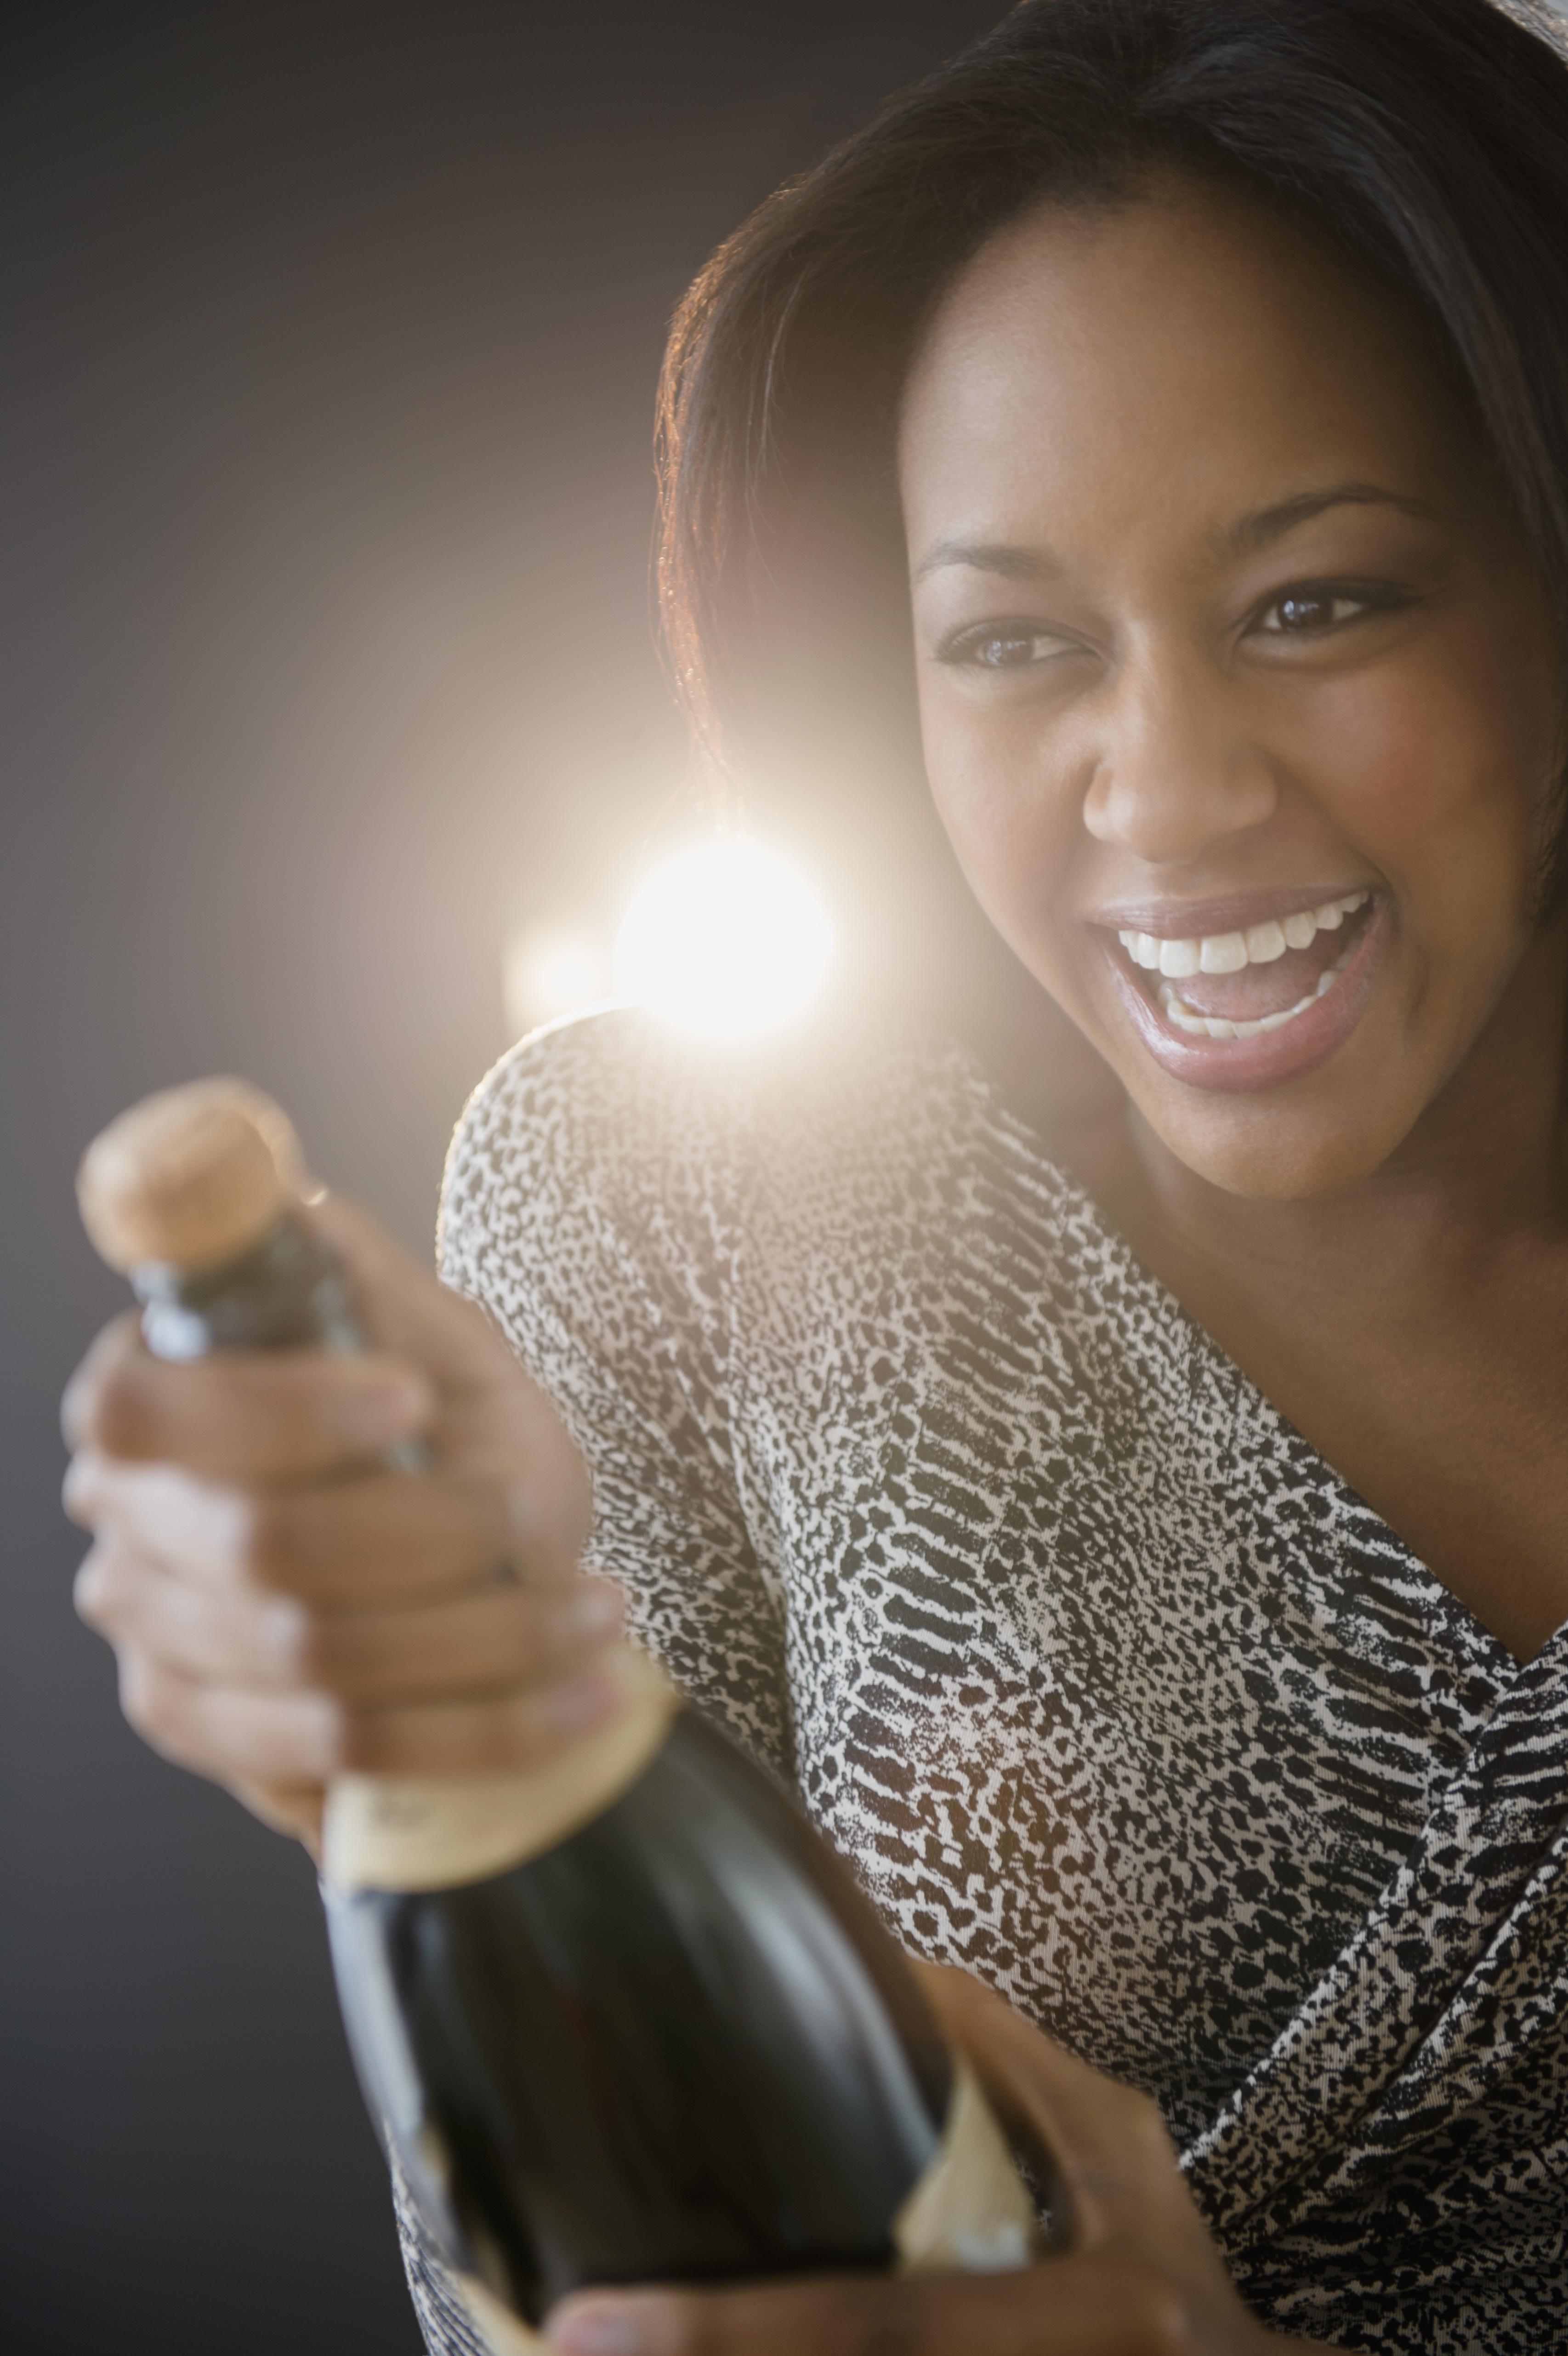 African American woman opening champagne bottle